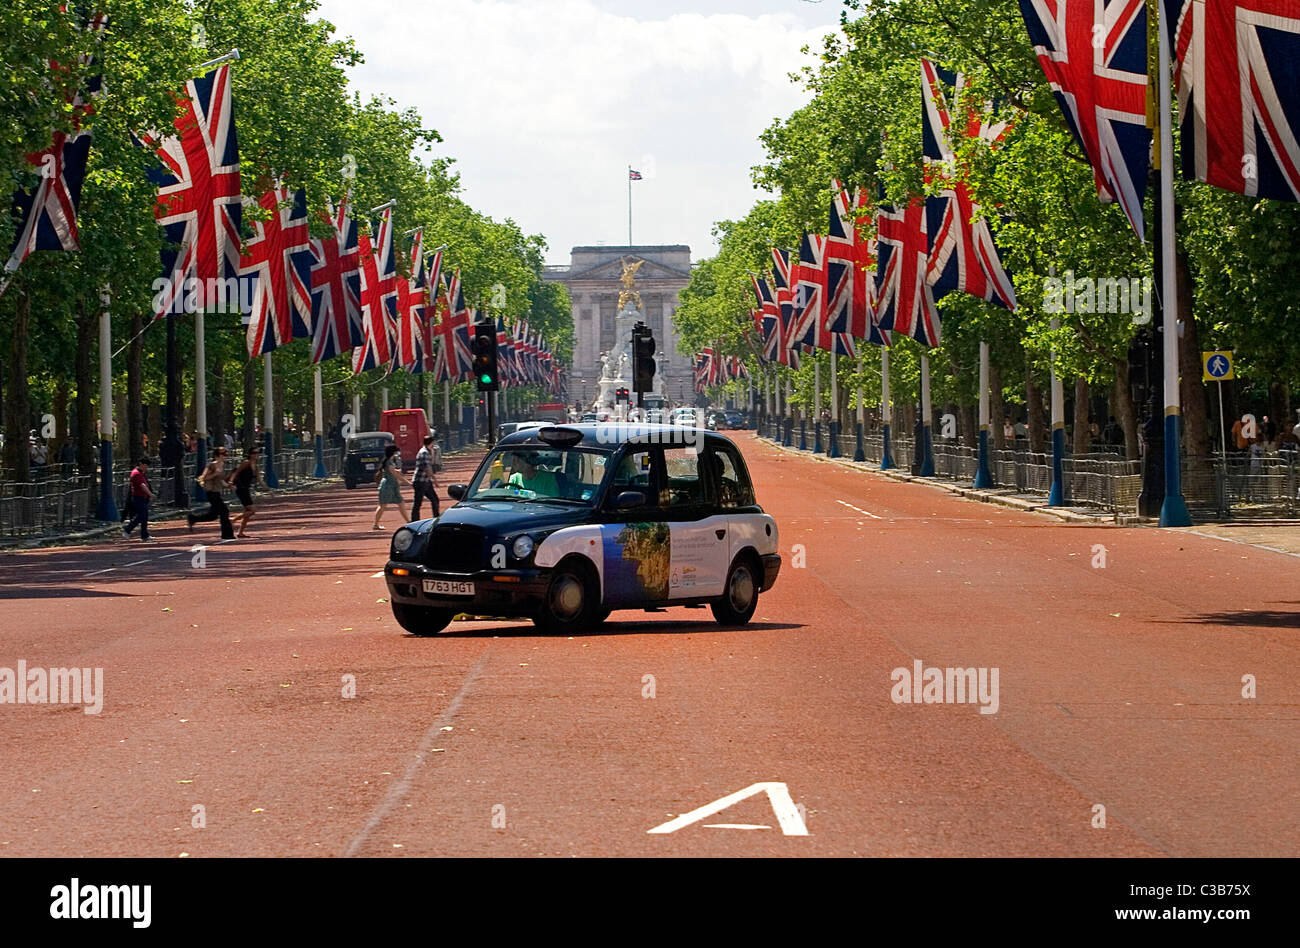 A taxi carrying an advert by Ubiquitous drives along The Mall, London. - Stock Image